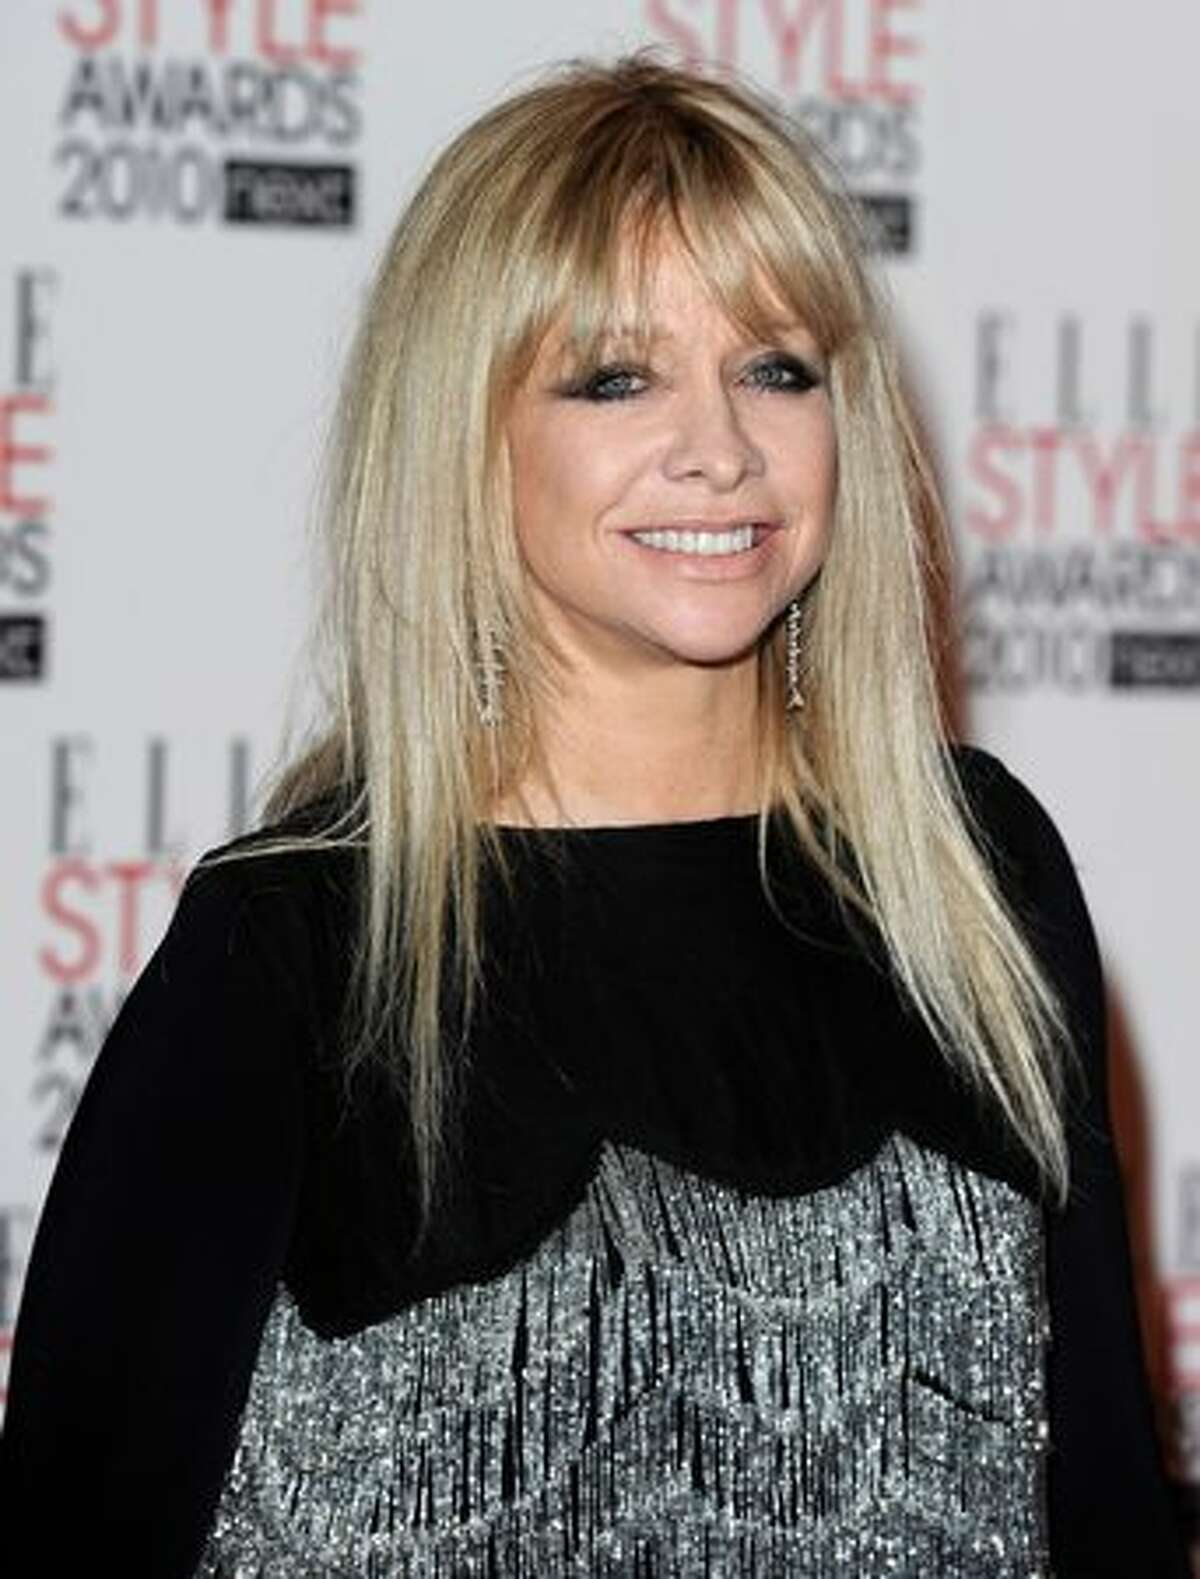 Former model Jo Wood arrives at the Elle Style Awards 2010 at the Grand Connaught Rooms in London on Monday, Feb. 22, 2010.